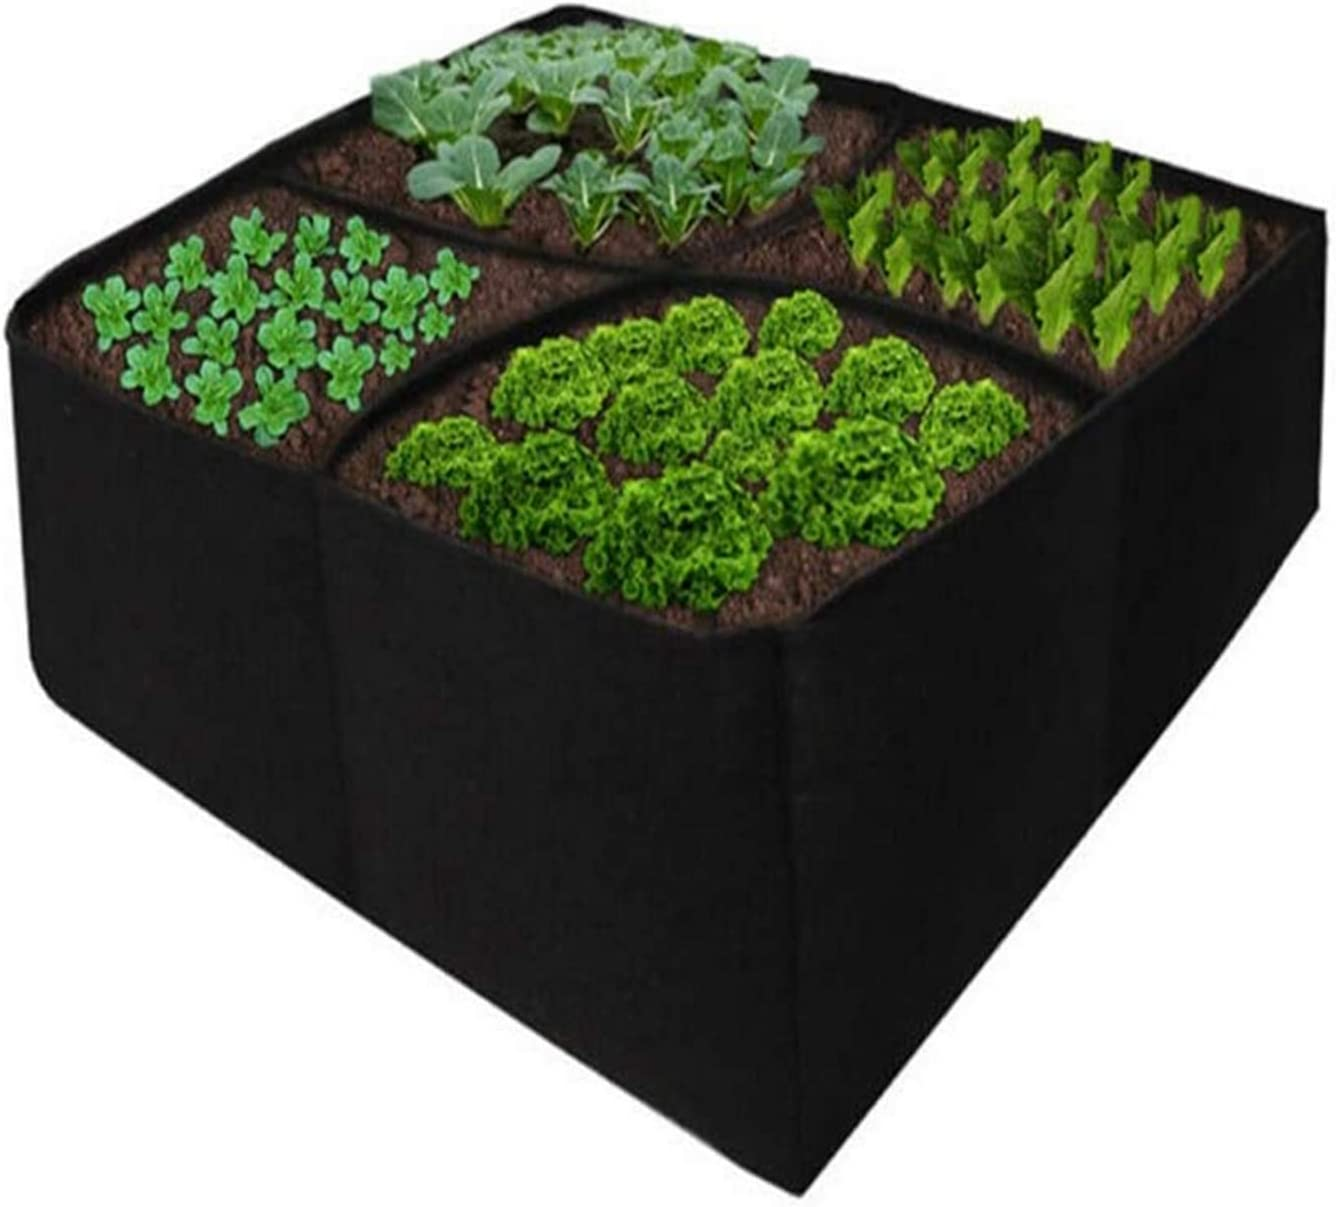 Elevated Garden Bed, Divided Into 4 Grids Fabric Elevated Planting Bed, Square Garden Planting Bag, 2 feet x 2 feet